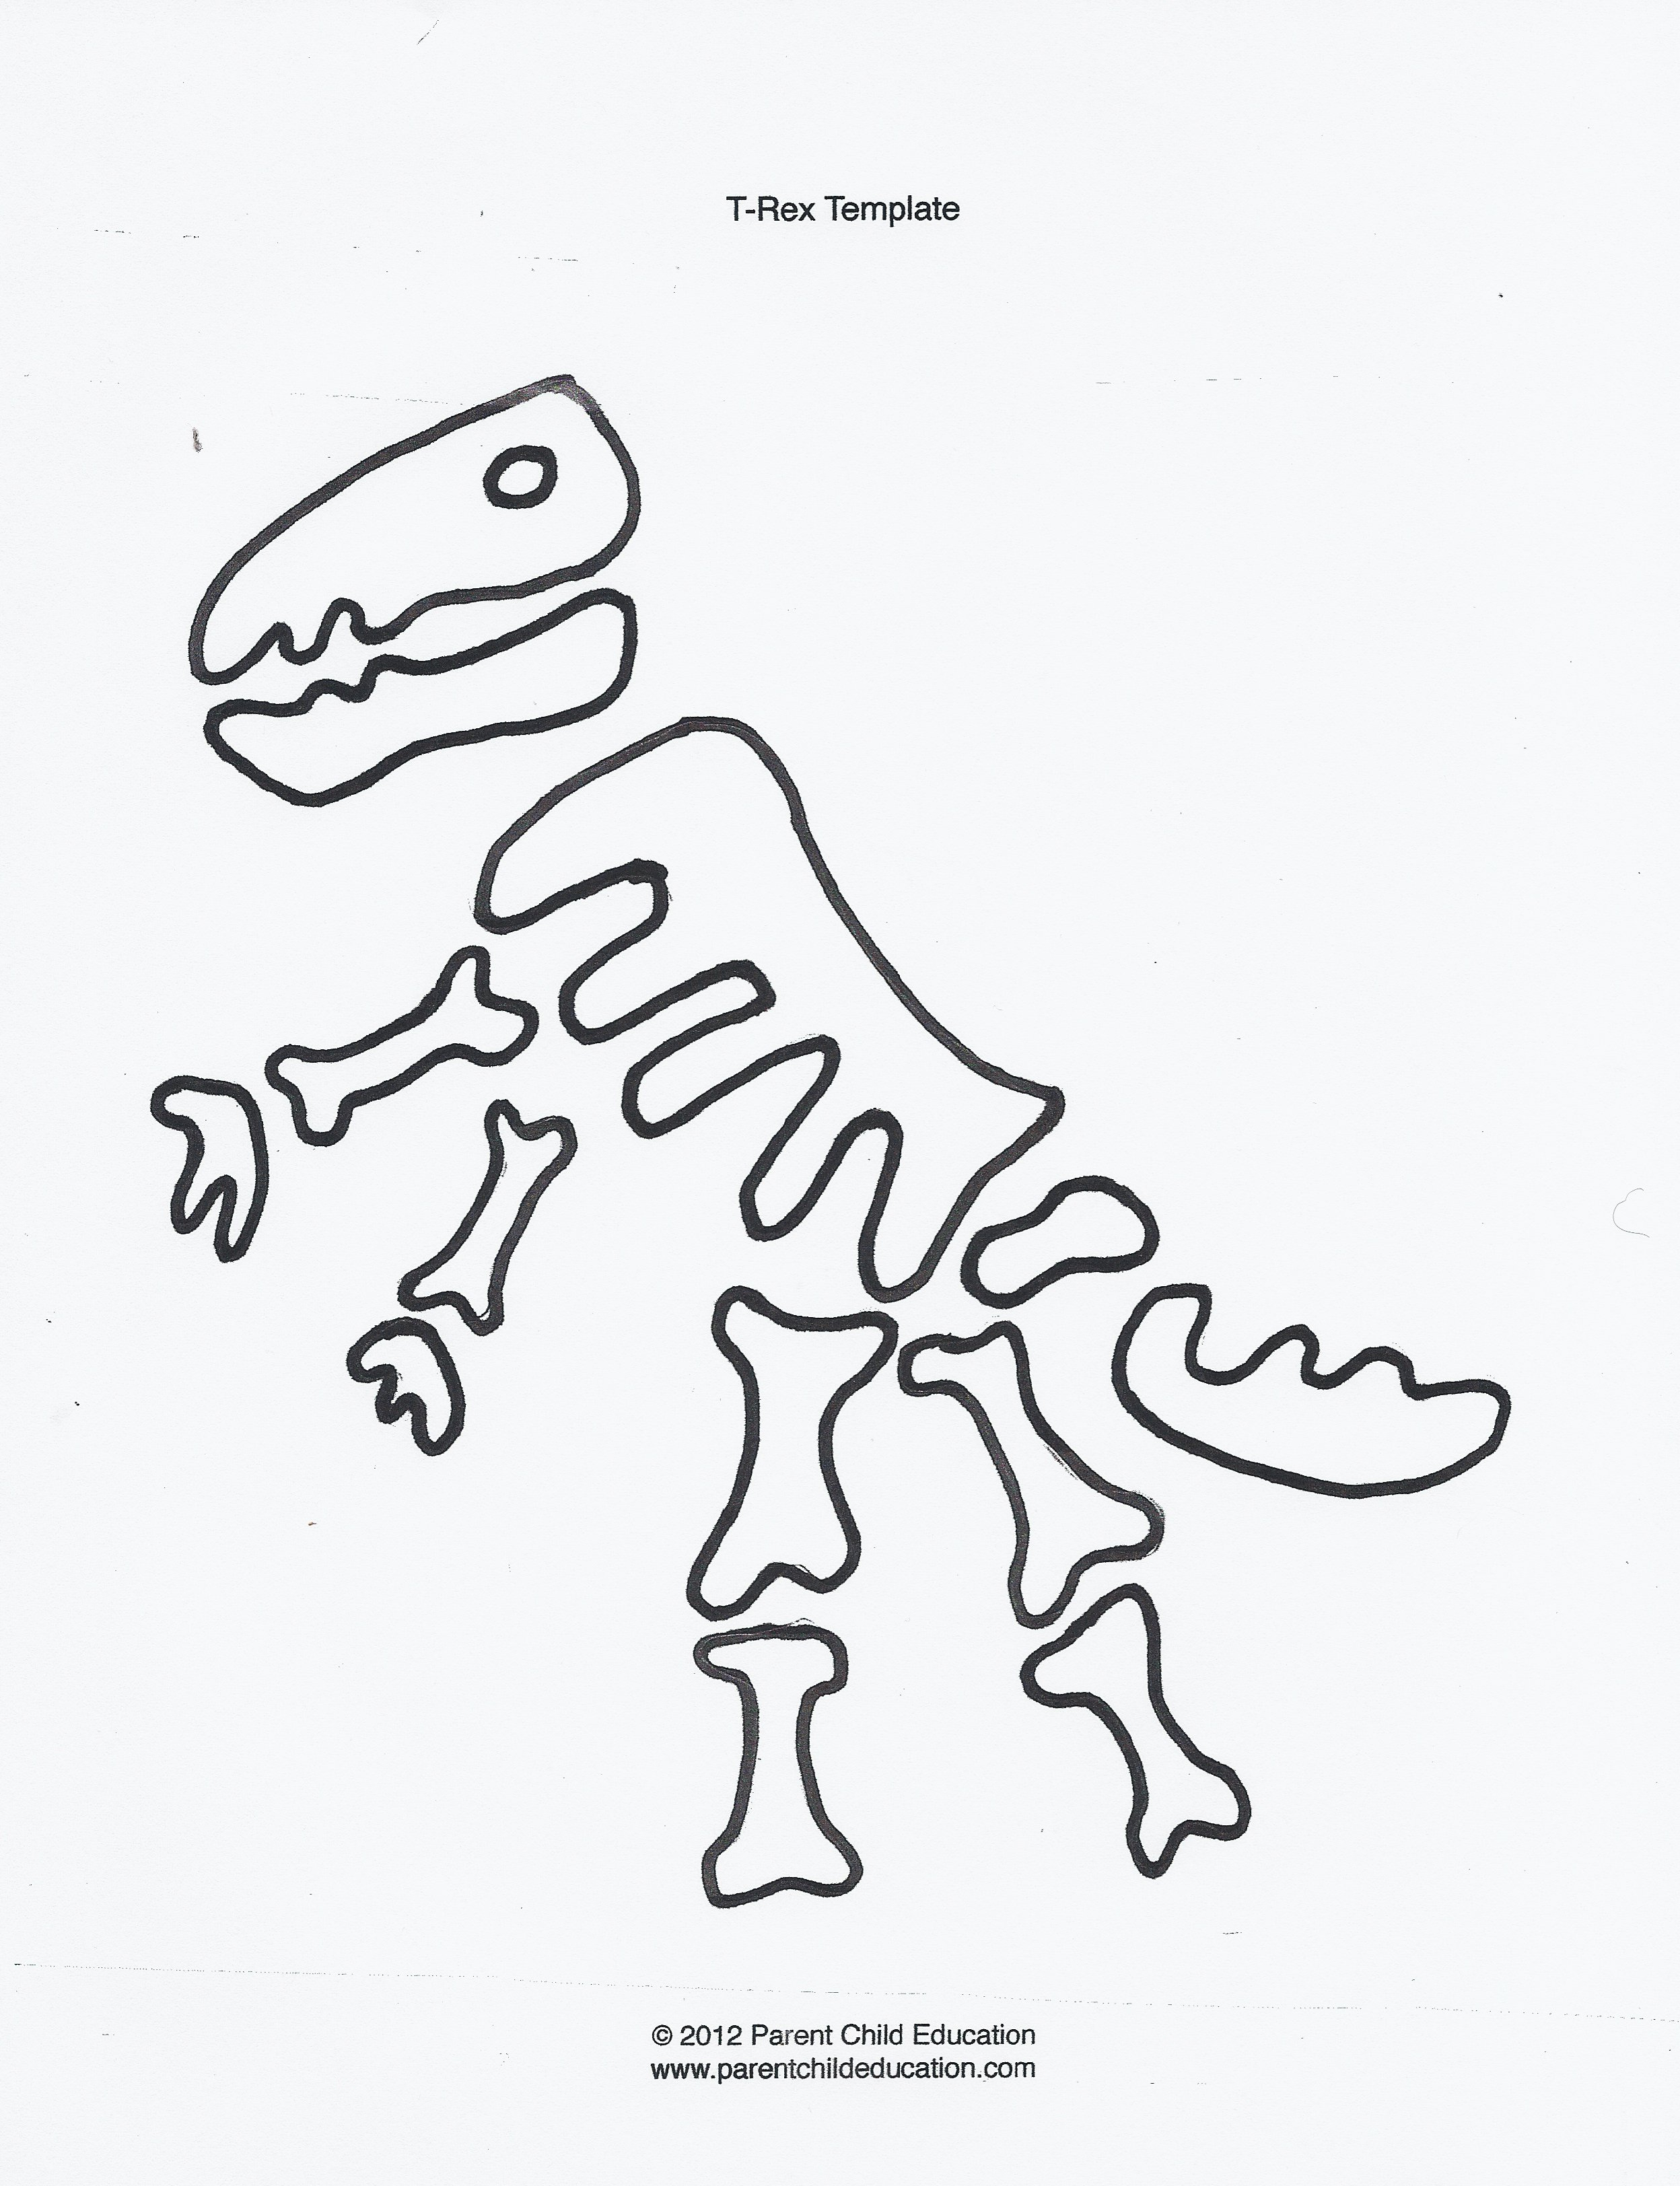 printable dinosaur skeleton template - dinosaur templates